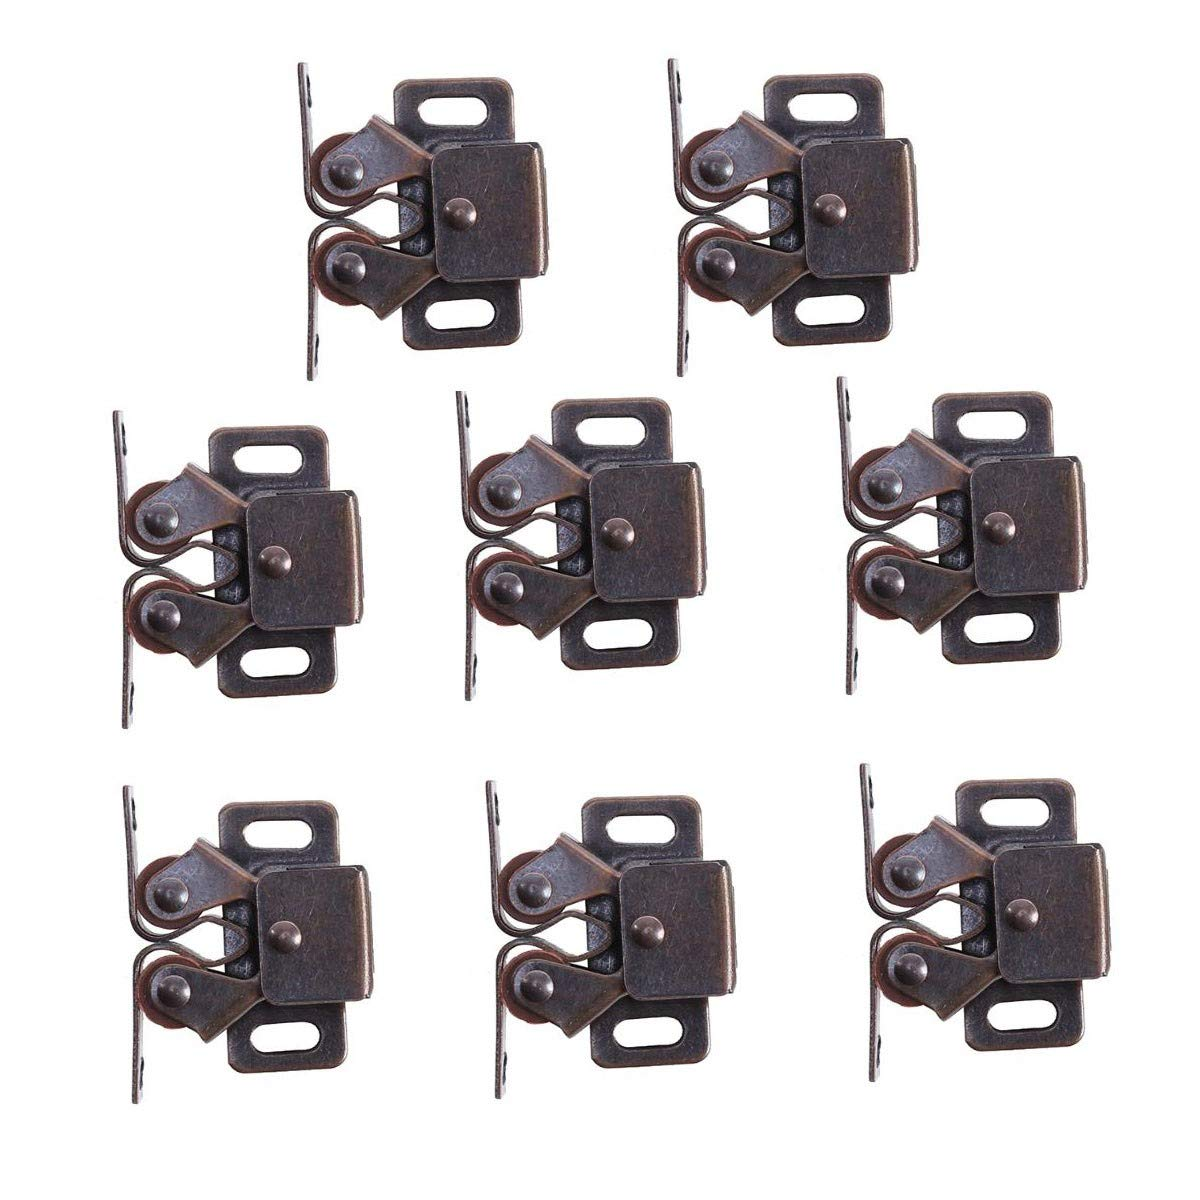 Door Catches, CCUCKY Pack Of 8 Pieces Double Roller Strong Hold Cuboard Cabinet Door Catches-Zinc Alloy HUIYUE